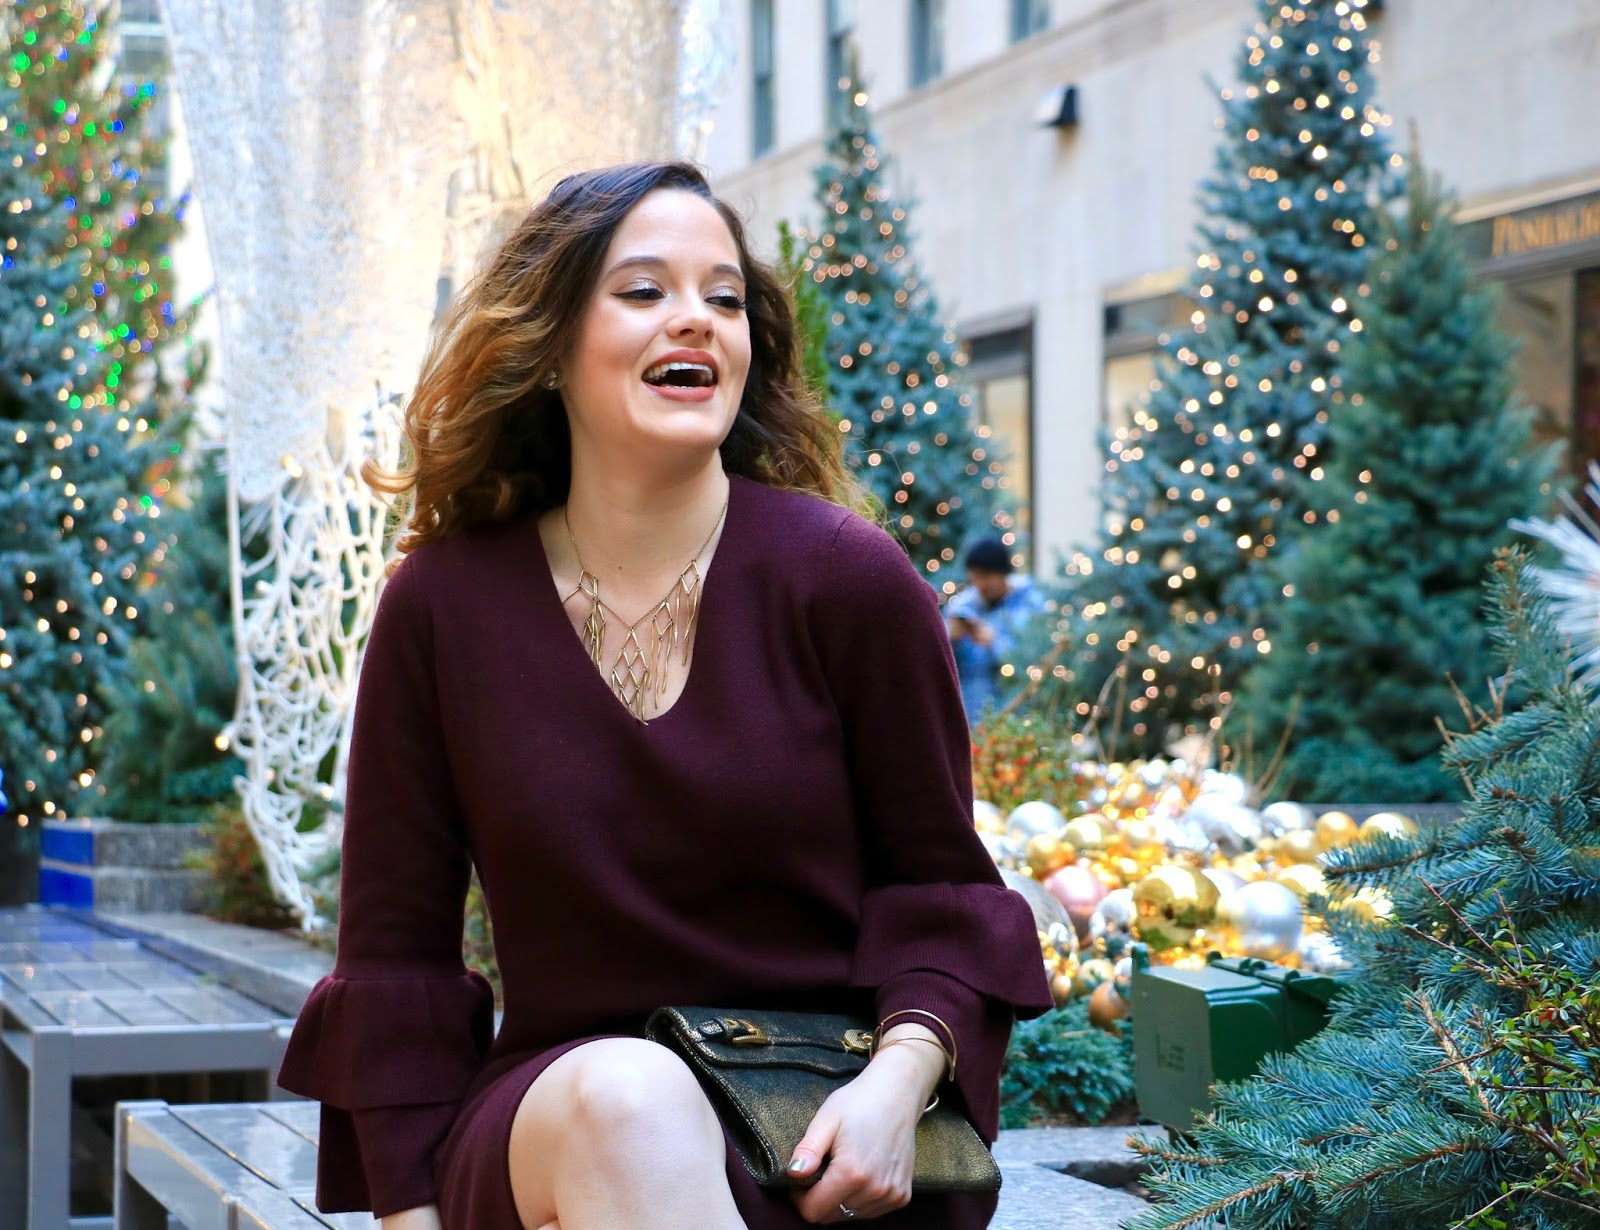 Nyc beauty blogger Kathleen Harper showing holiday makeup ideas